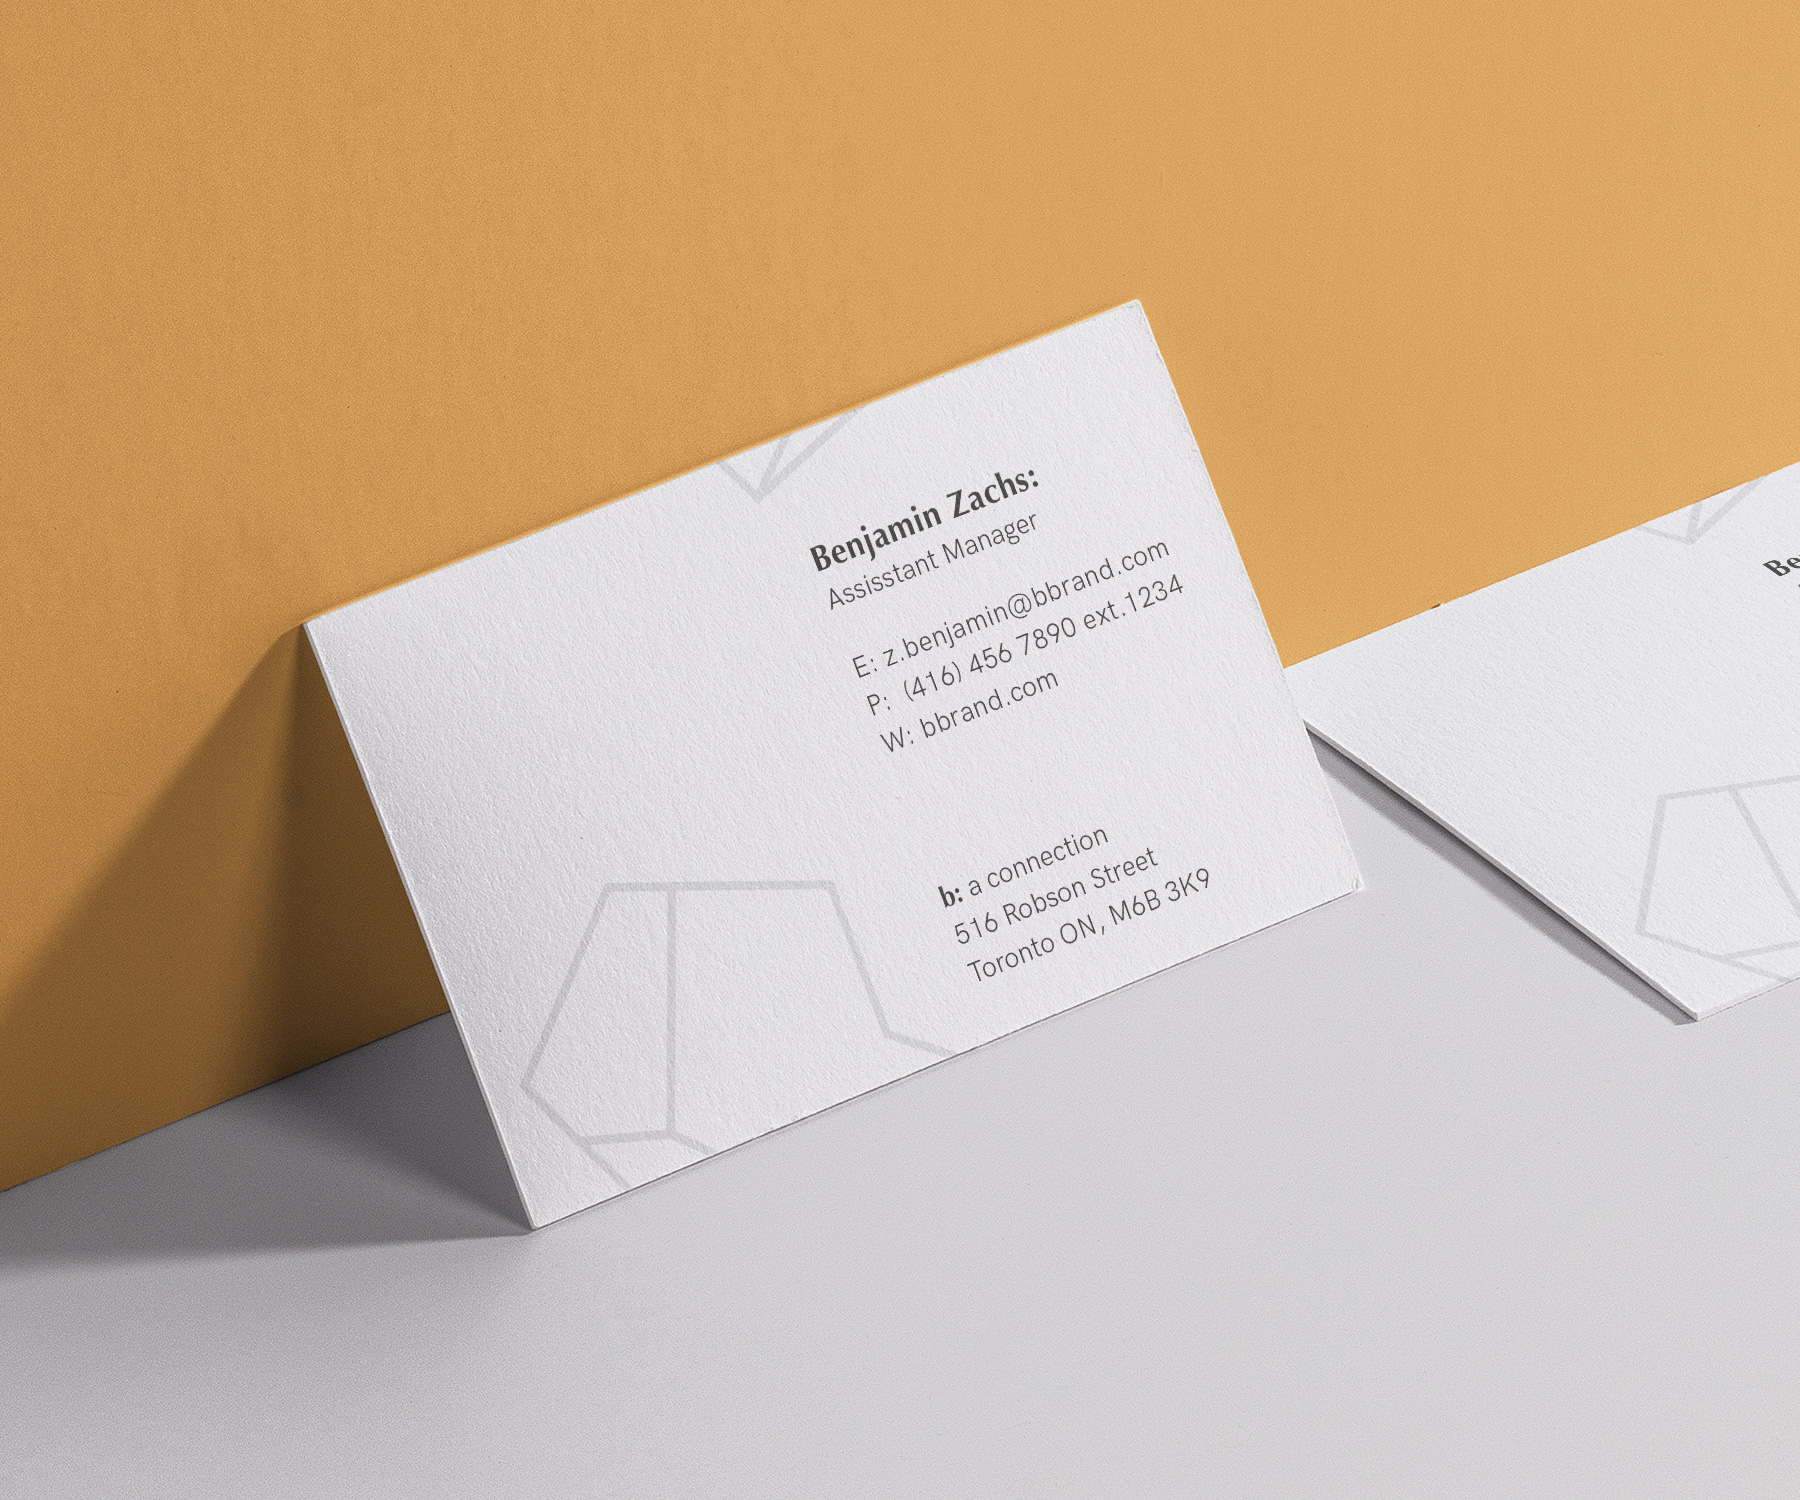 b_overview_businesscard